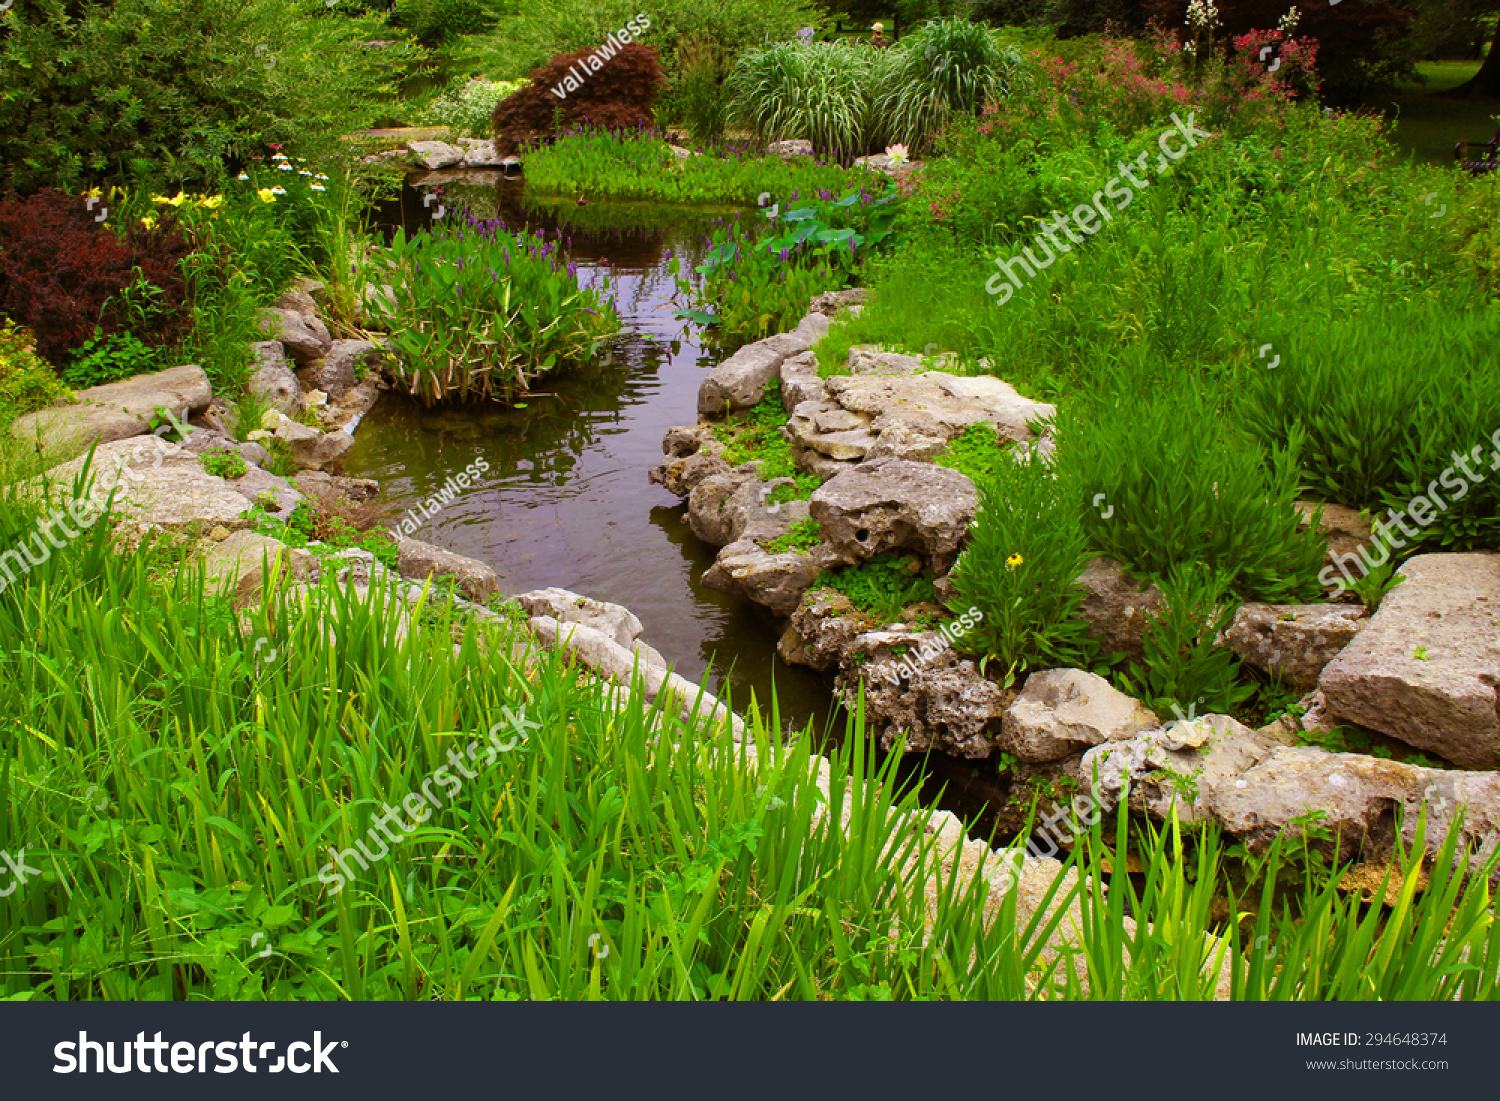 Decorative rocks near a small pond in a garden stock photo for Pond pebbles landscape rock